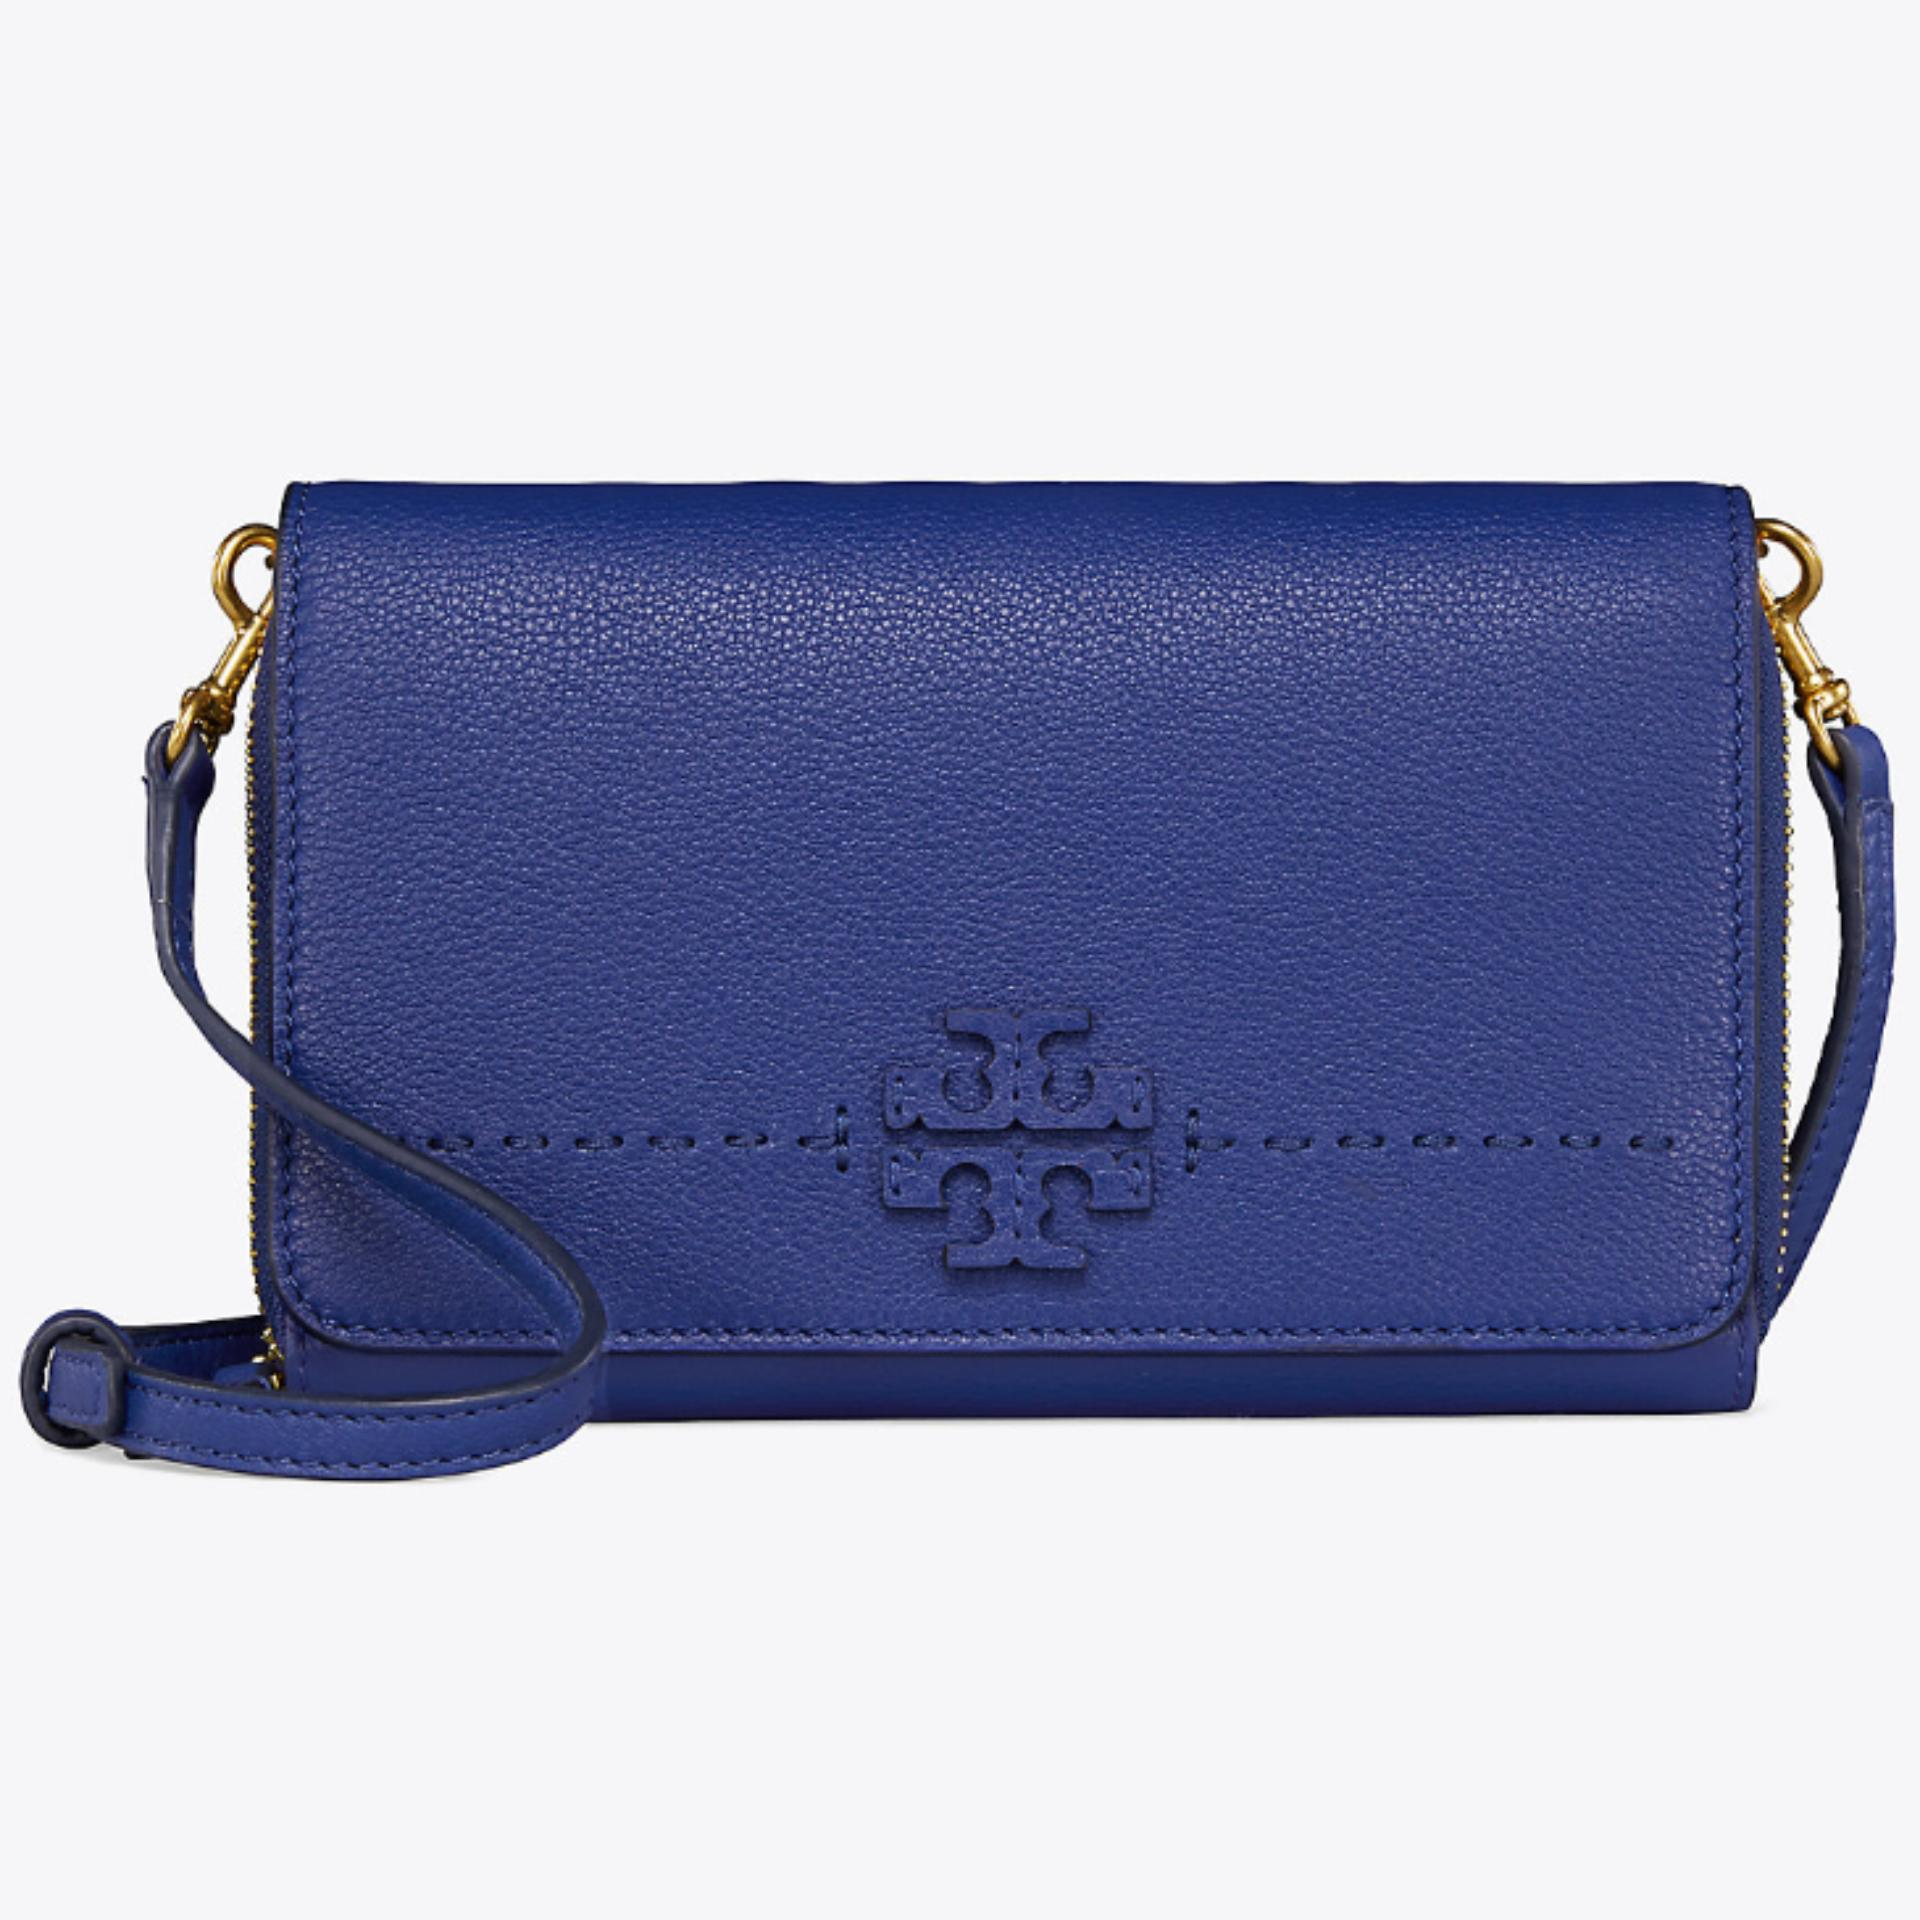 TORY BURCH McGRAW FLAT WALLET CROSS-BODY (BLUE)